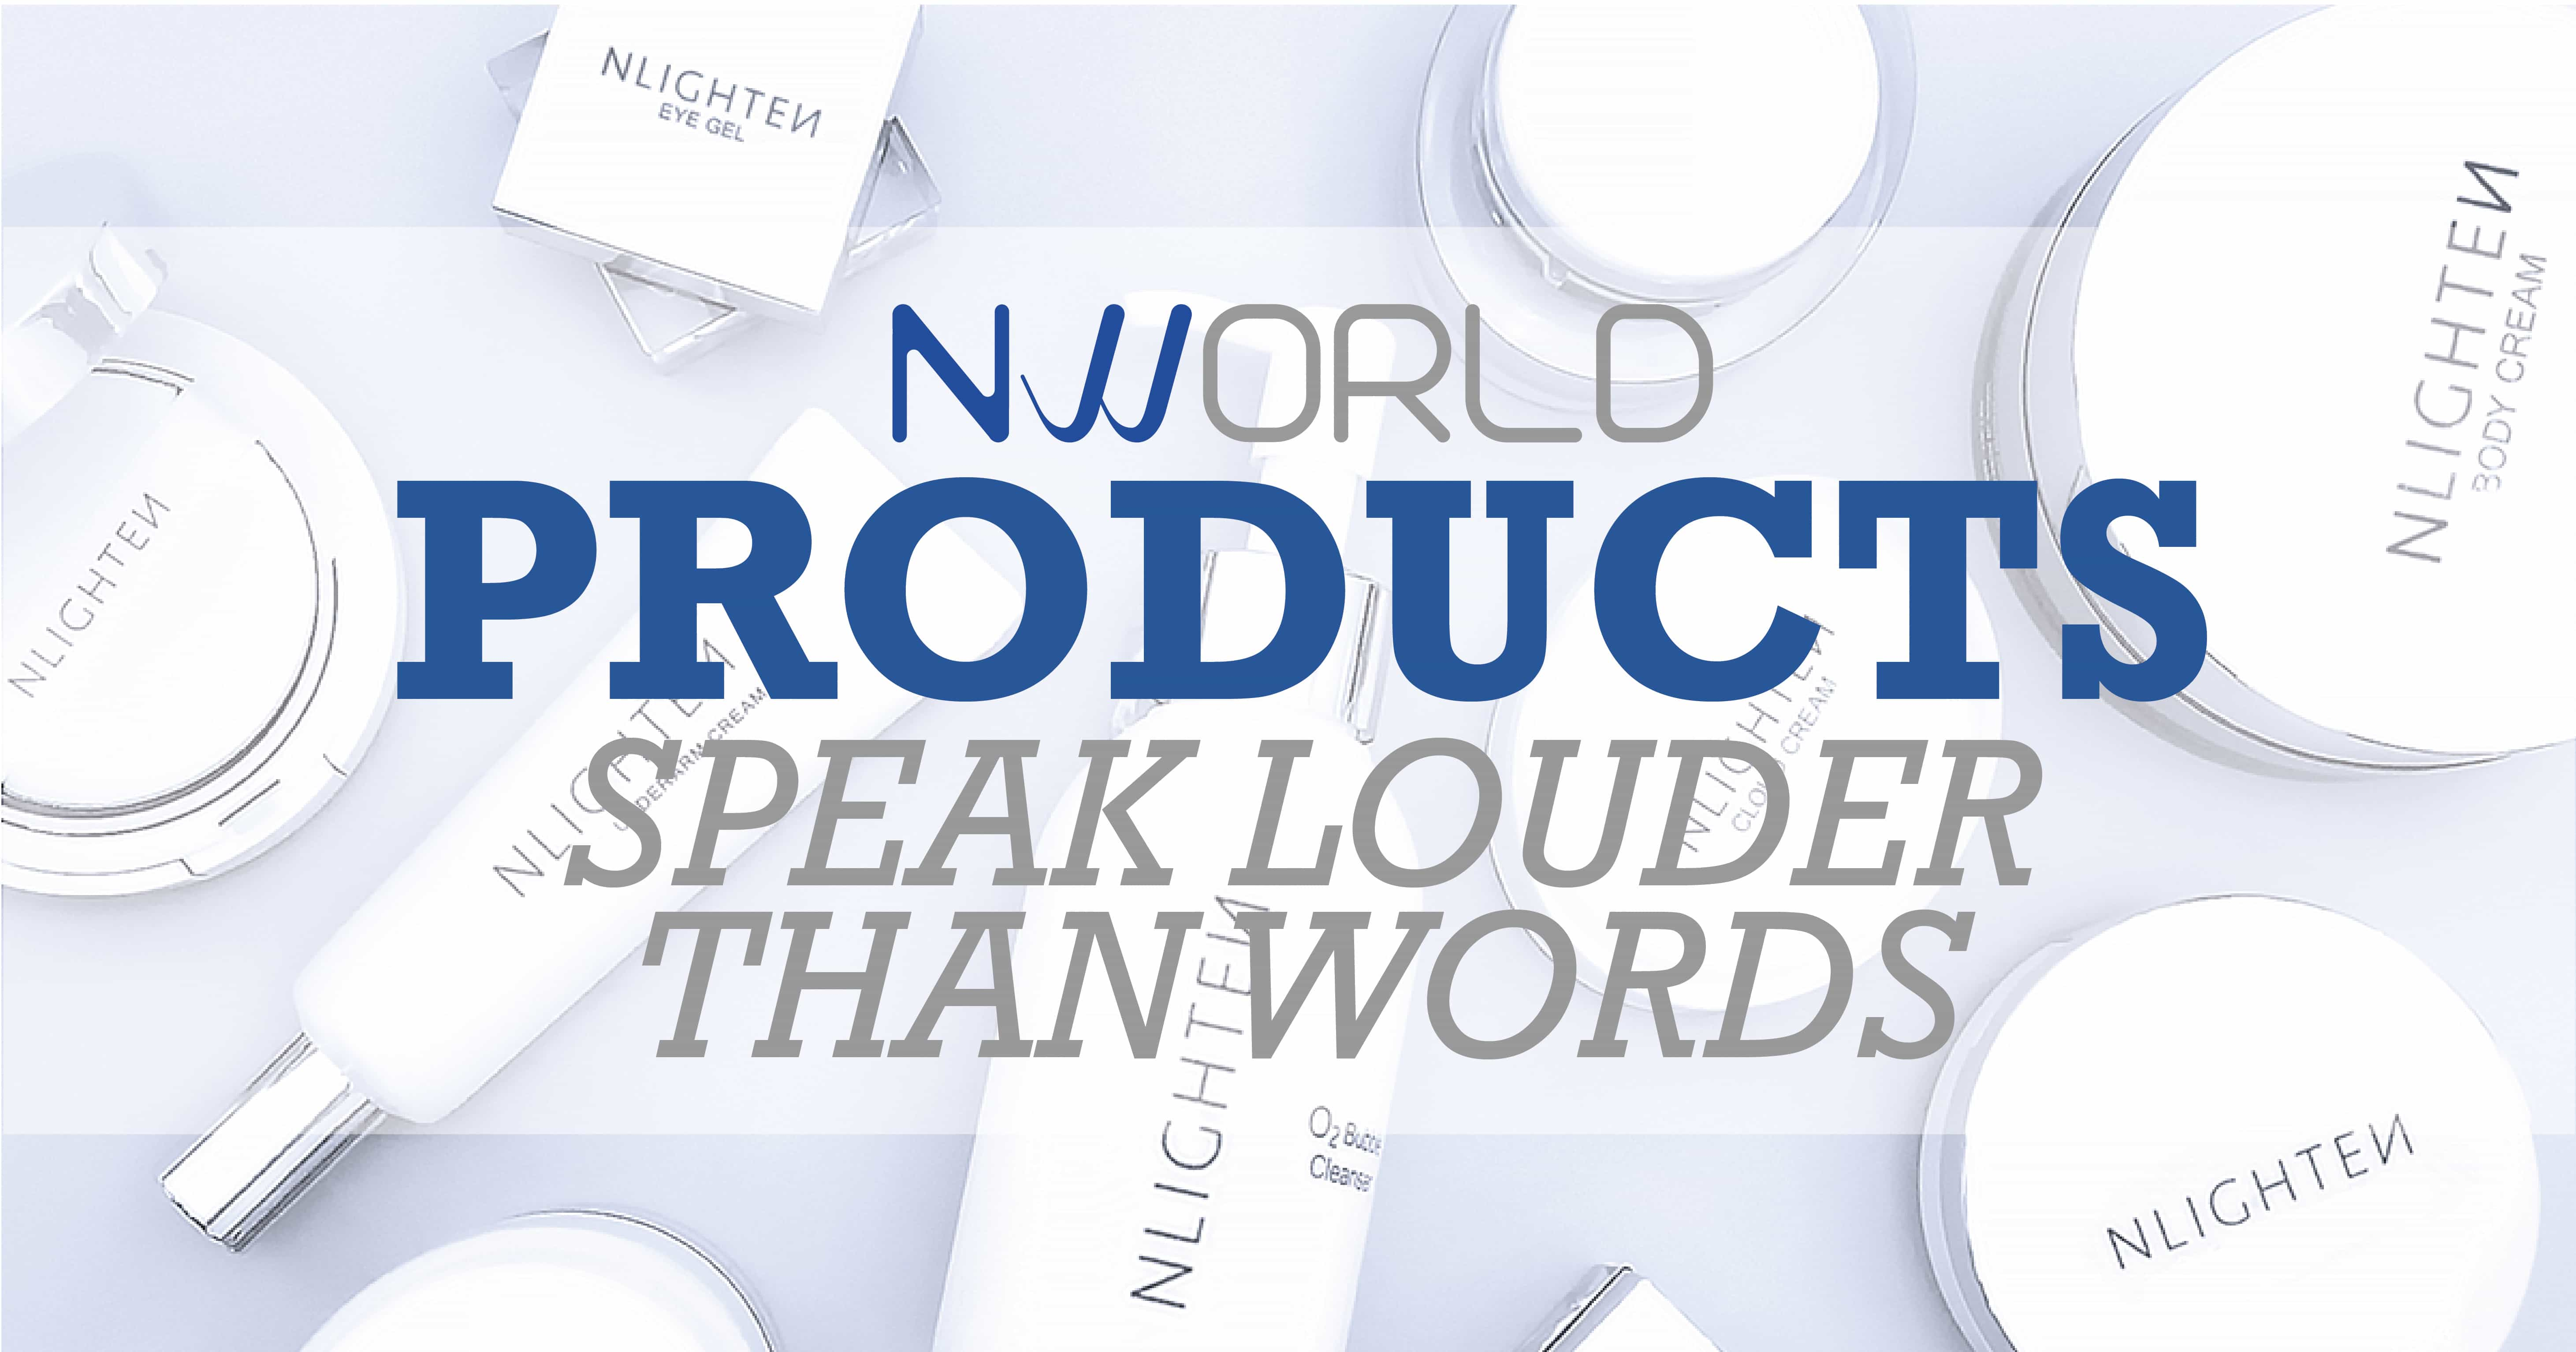 PRODUCTS SPEAK LOUDER THAN WORDS